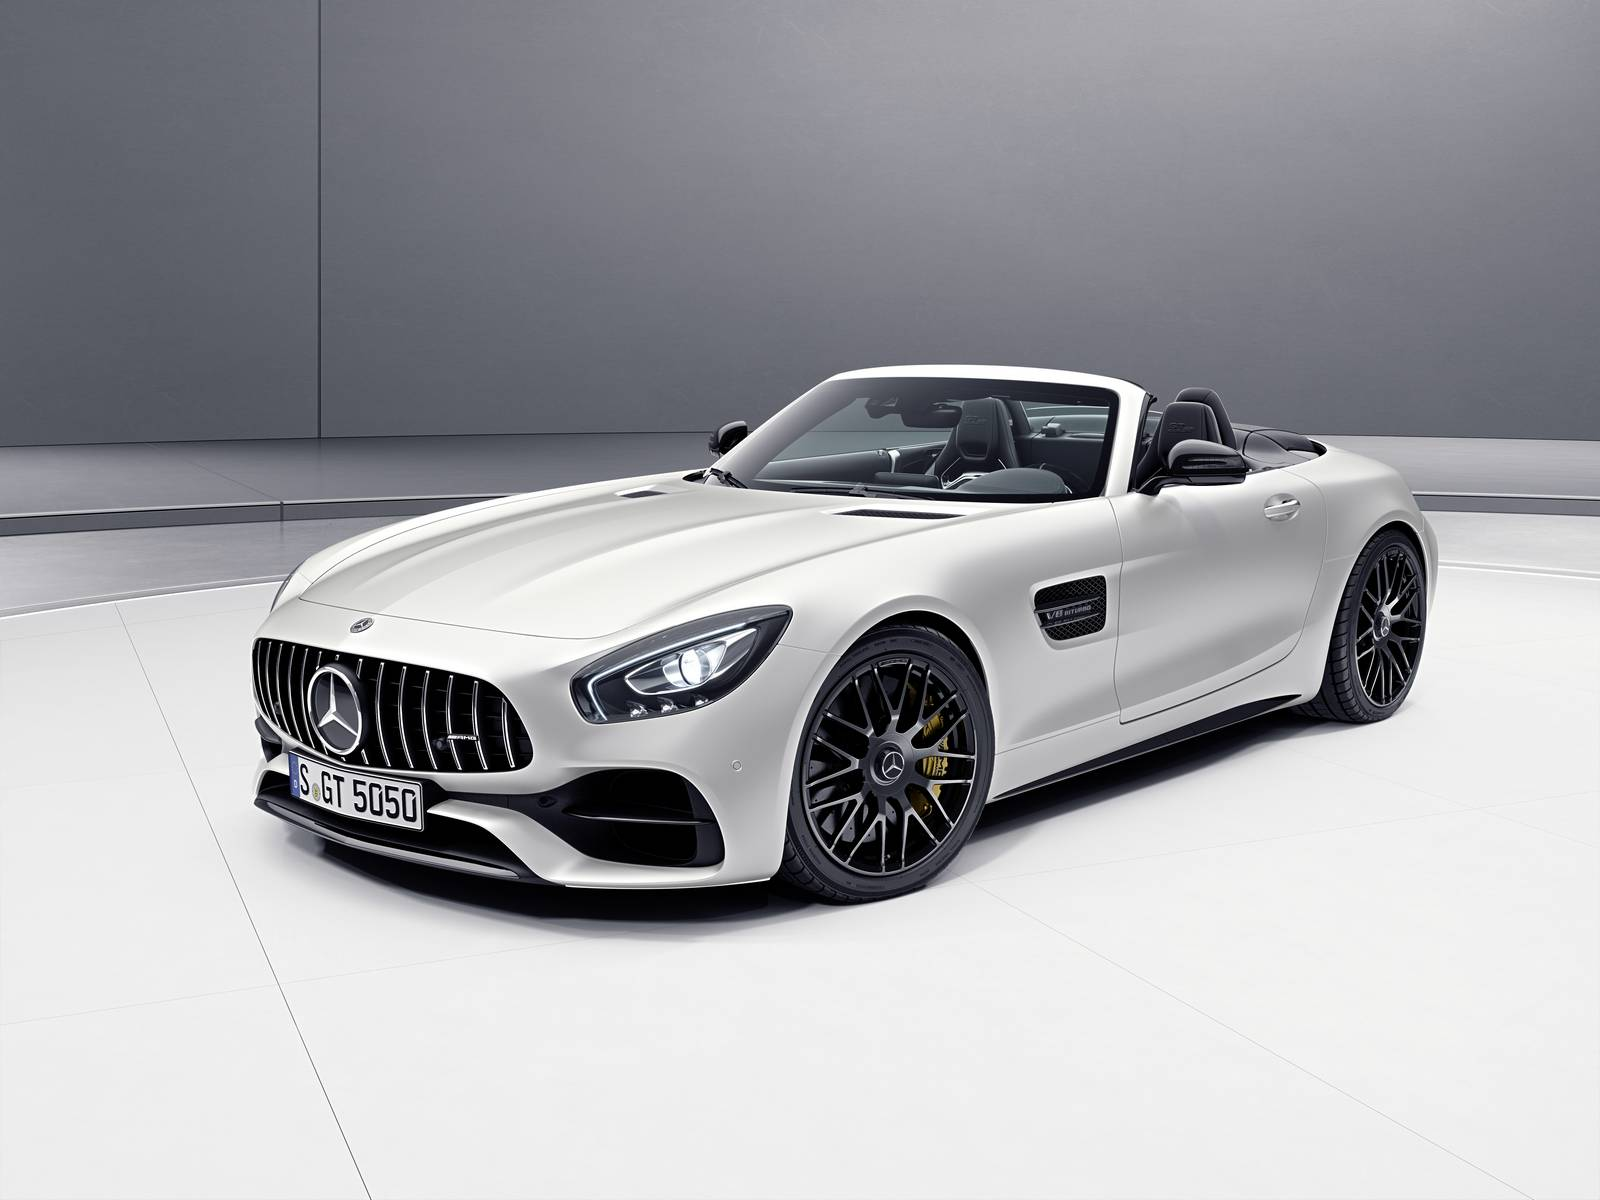 mercedes-amg prepares new edition models for the 2017 geneva motor show